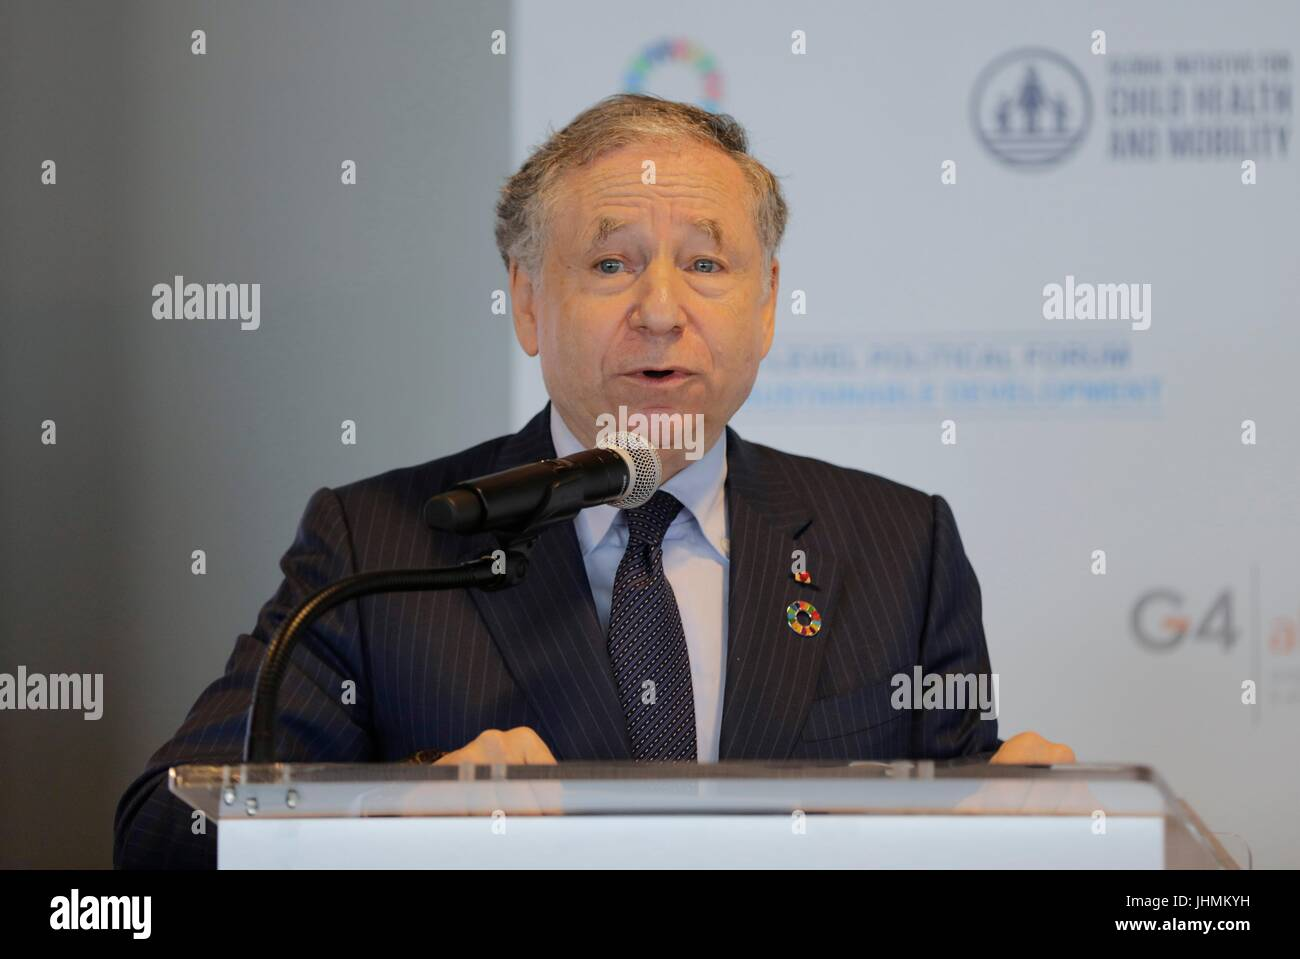 United Nations, New York, USA, July 14 2017 - Jean Todt, UN Special Envoy for Road Safety Participated on a Meeting Stock Photo